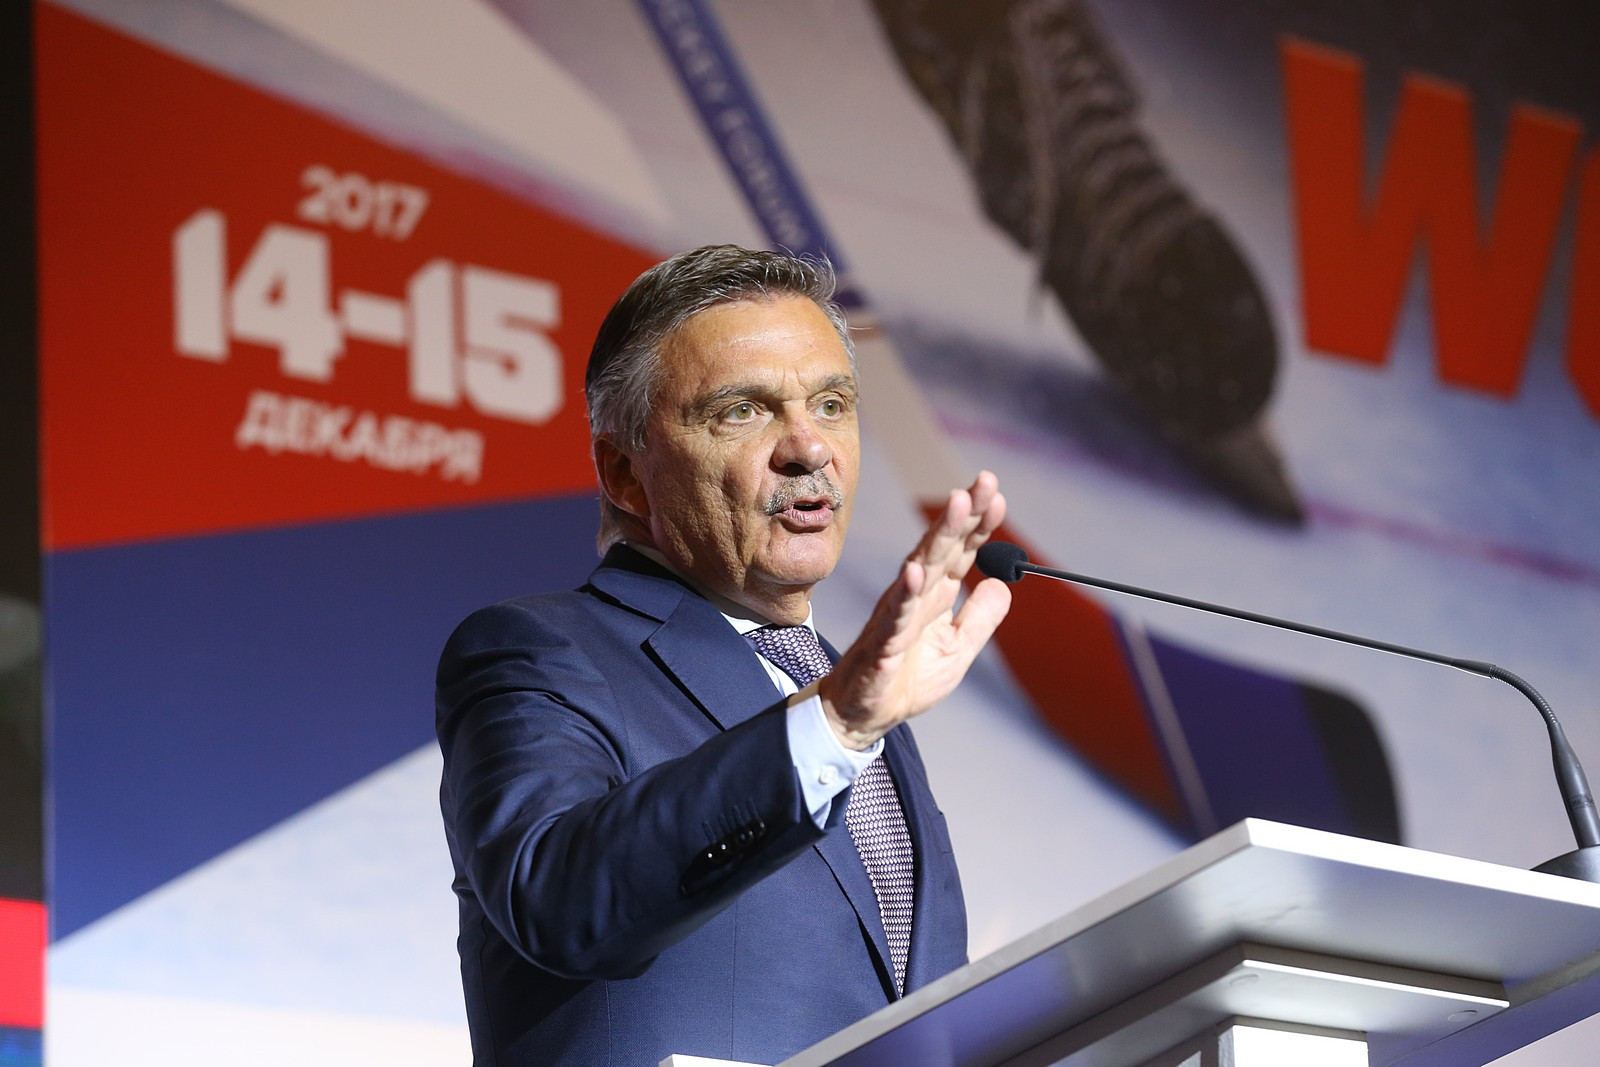 IIHF President René Fasel has revealed that a decision on whether Russia's women's ice hockey team can play at Pyeongchang 2018 after six of the team from Sochi 2014 were disqualified is due next week ©RIHF